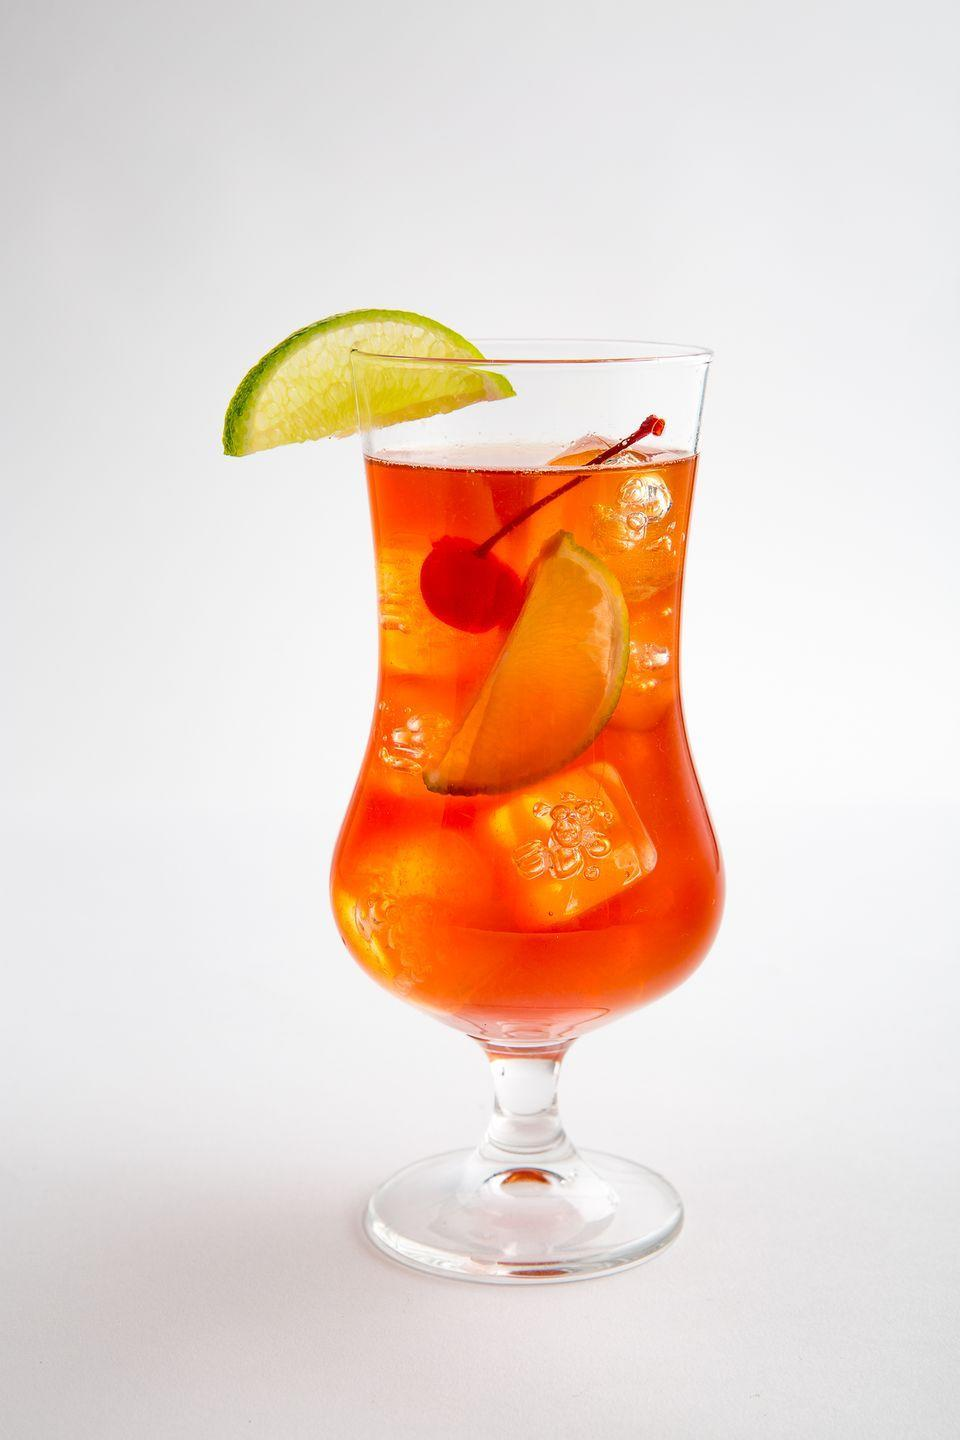 "<p>A festive riff on rum punch.</p><p>Get the recipe from <a href=""https://www.delish.com/cooking/recipe-ideas/recipes/a49747/cranberry-zombie-recipe/"" rel=""nofollow noopener"" target=""_blank"" data-ylk=""slk:Delish"" class=""link rapid-noclick-resp"">Delish</a>.</p>"